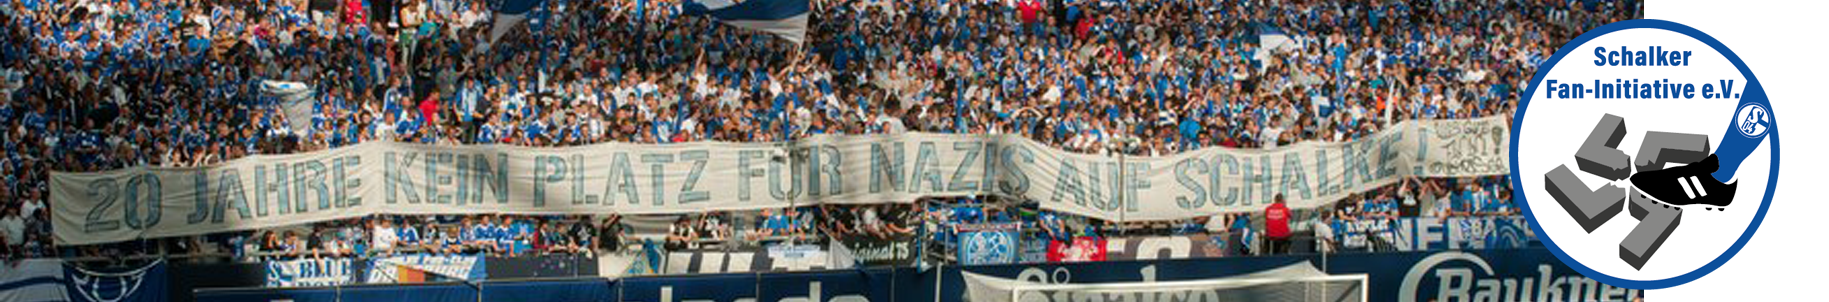 Schalker Fan-Initiative e.V.